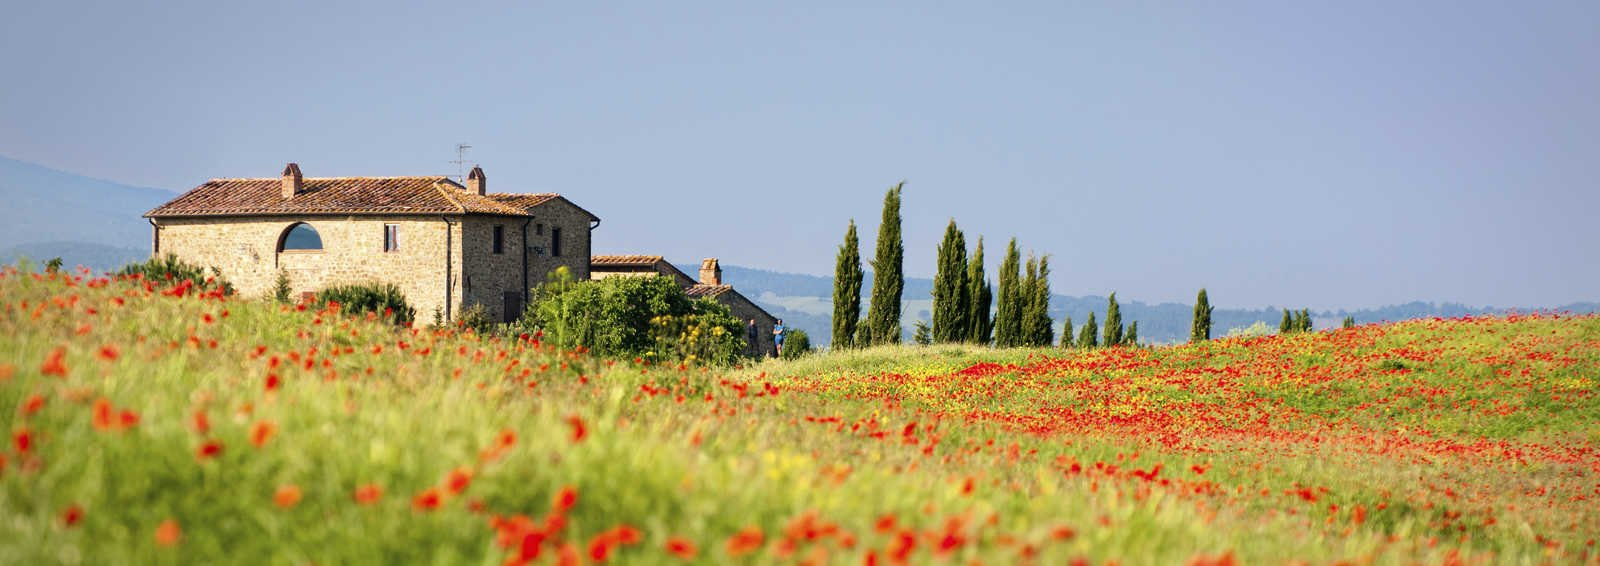 Poppy field in bloom, Tuscany, Italy